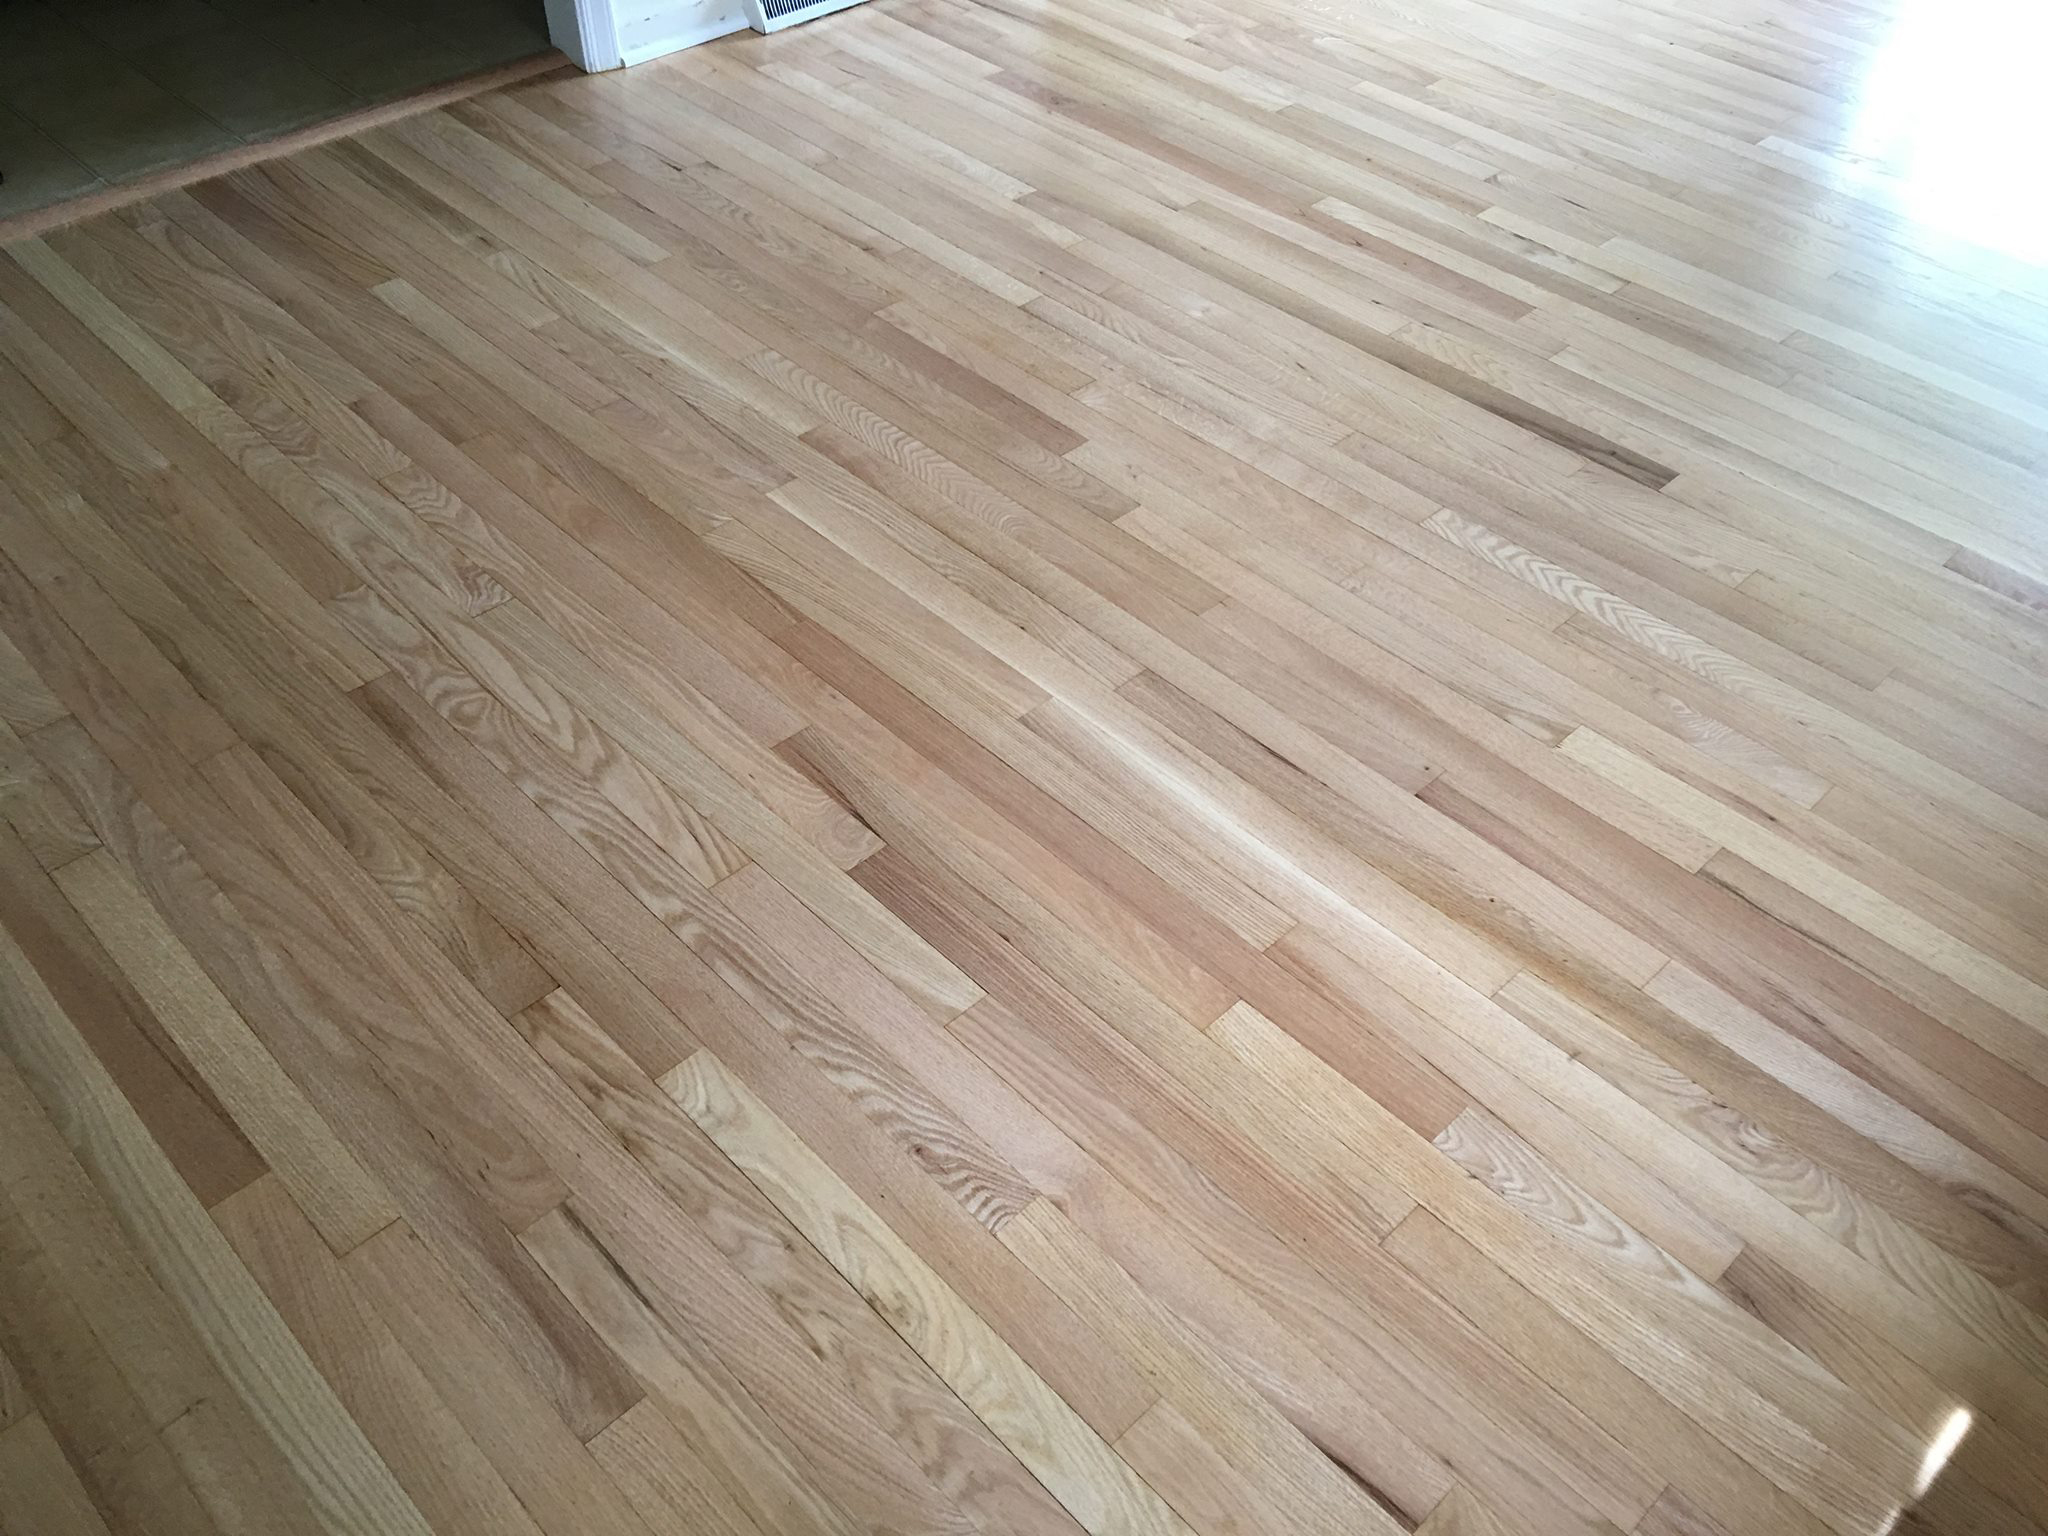 Red Oak Floors Refinished with Pro Image Satin